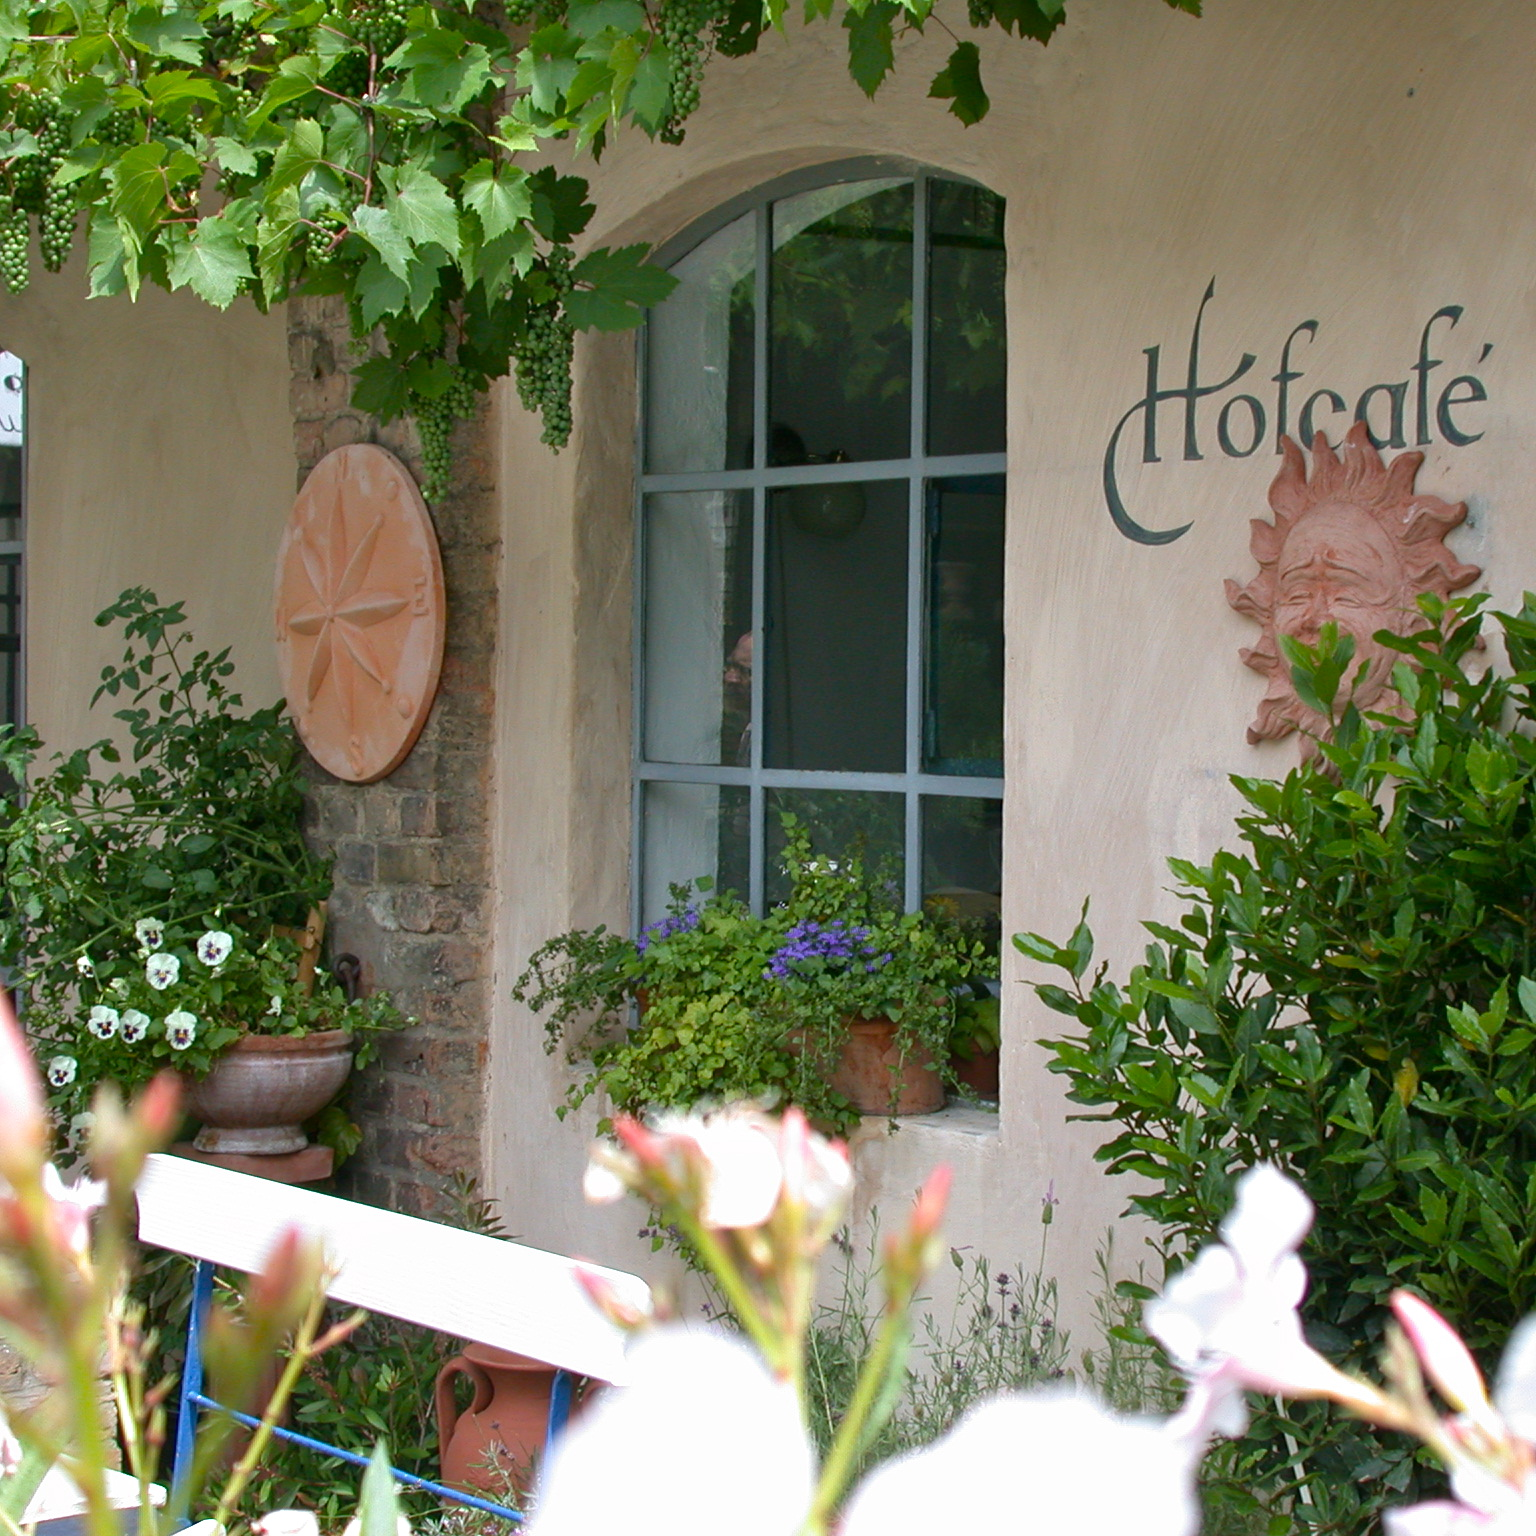 Hofcafe-Mutter-Fourage-Berlin-Wannsee-Cafe